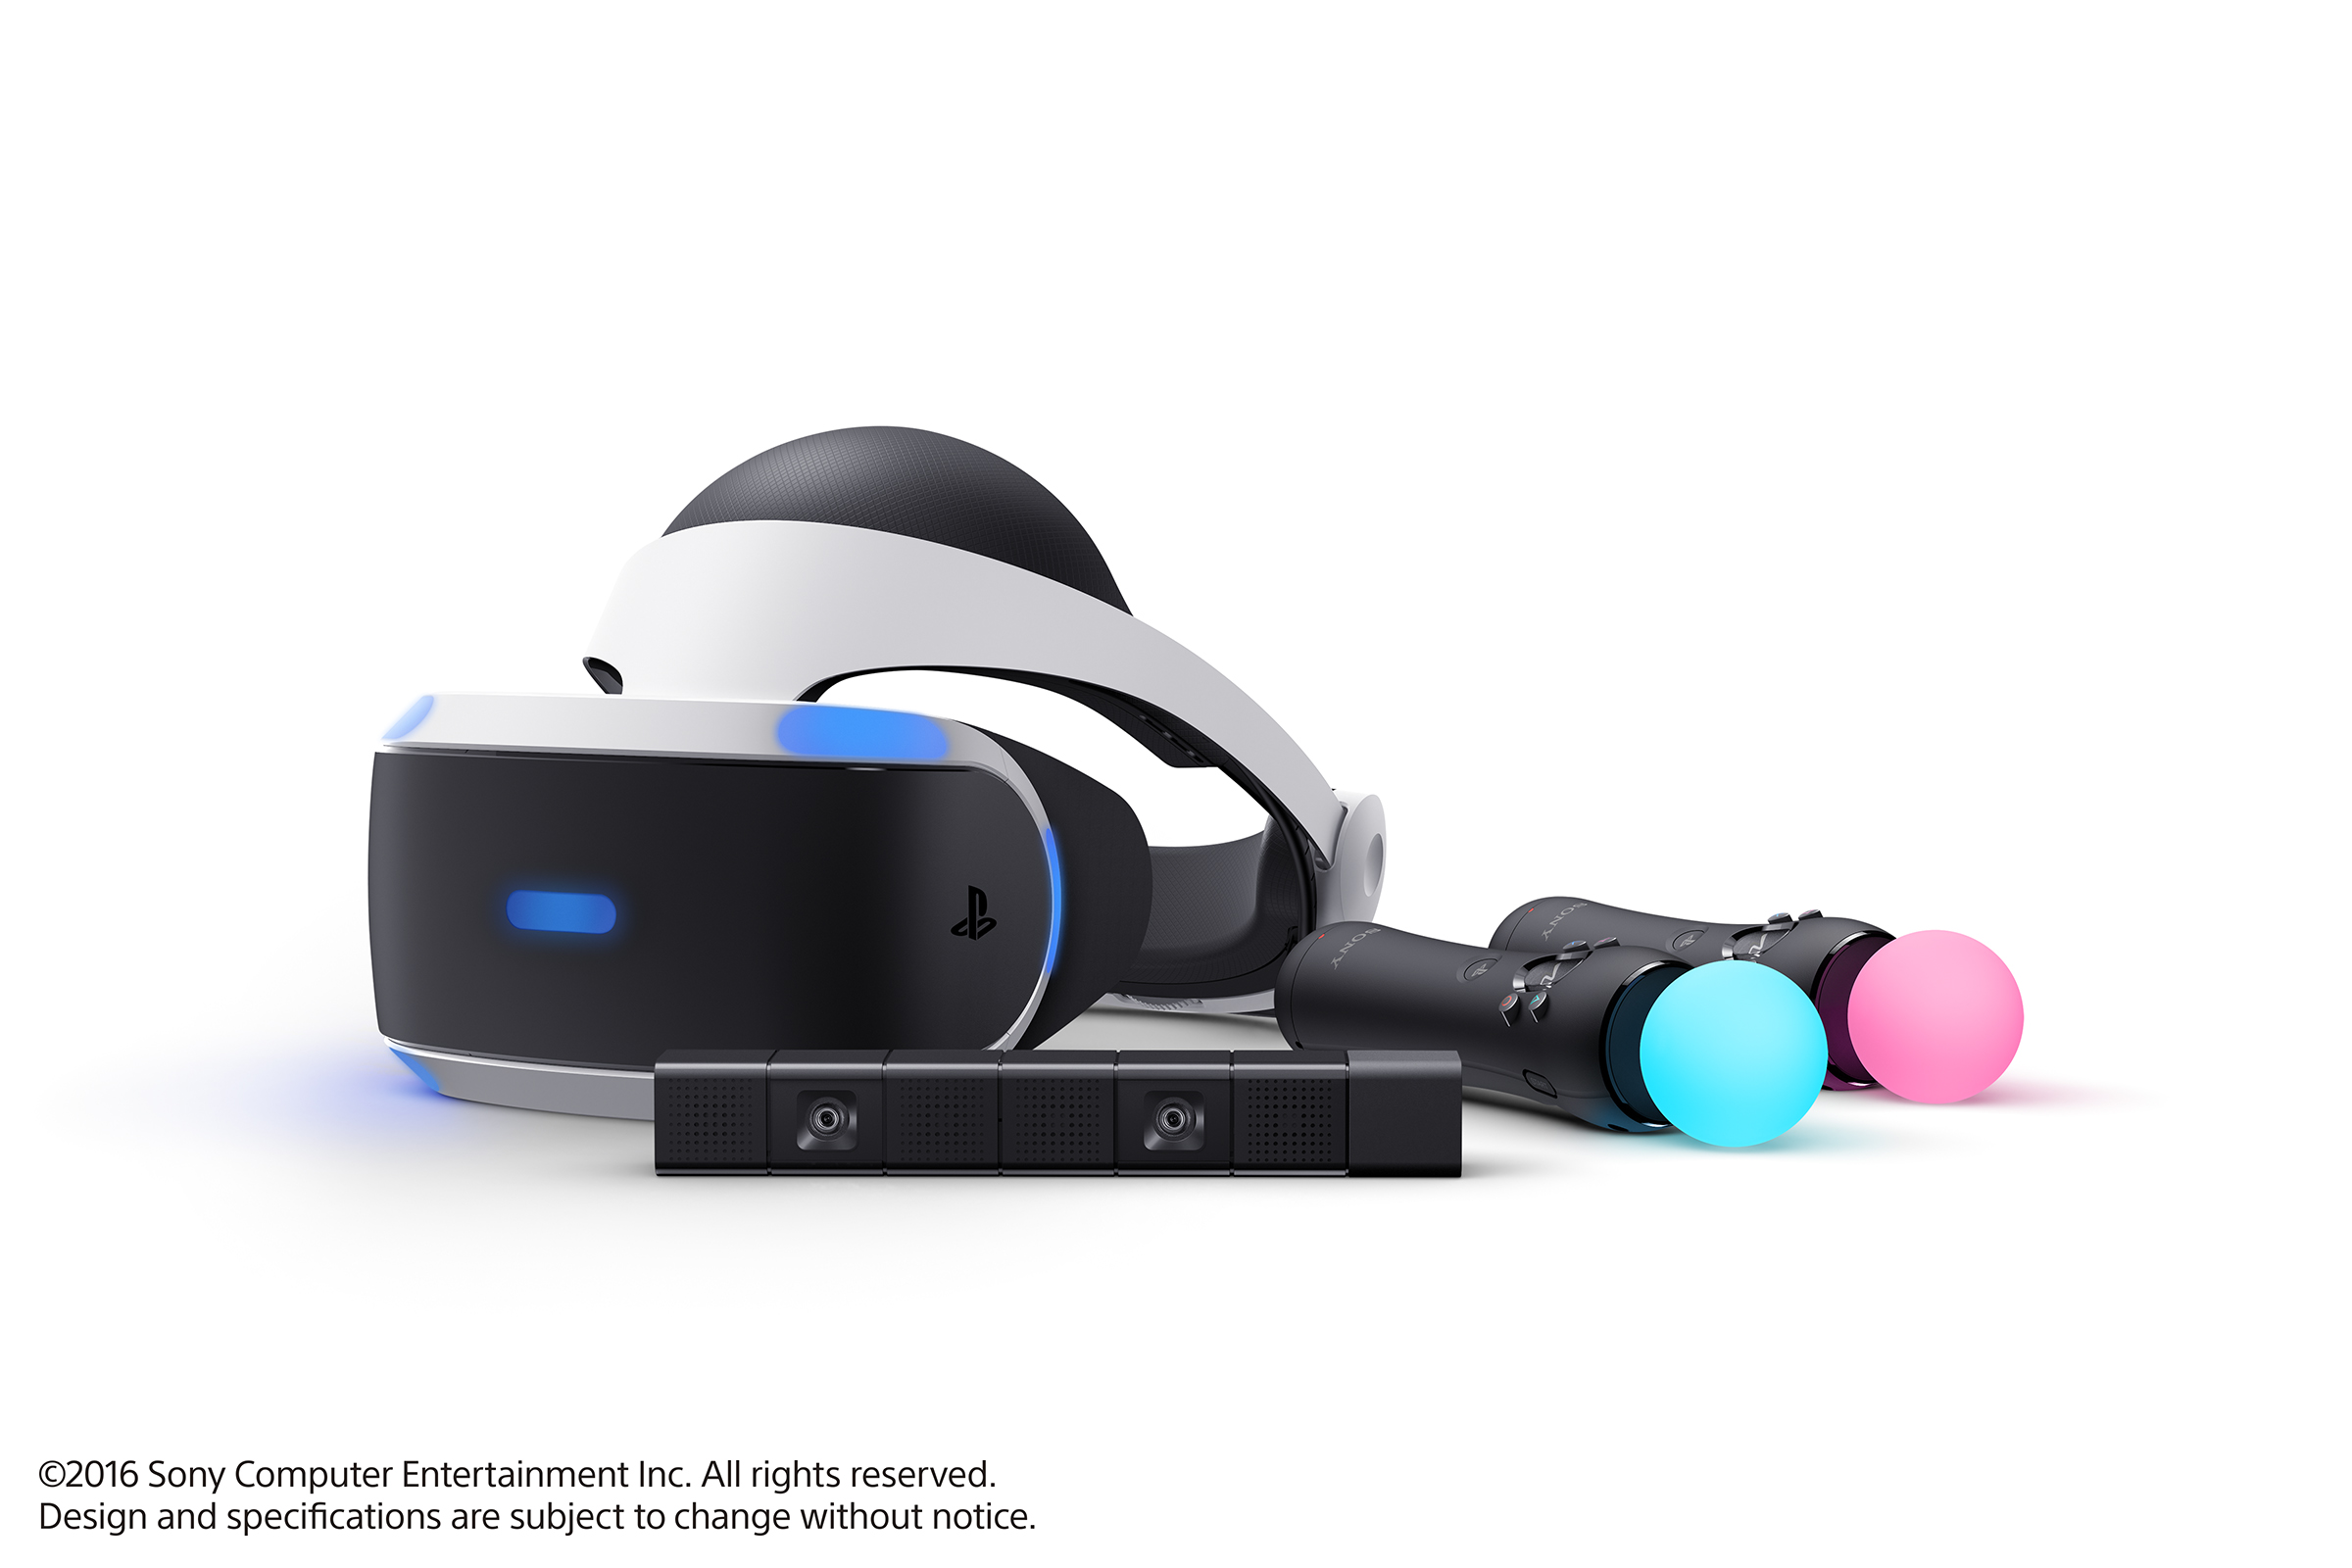 2fc378d384ba PlayStation VR To Get 64% of Market Share in 2016 With 1.6M Units Sold